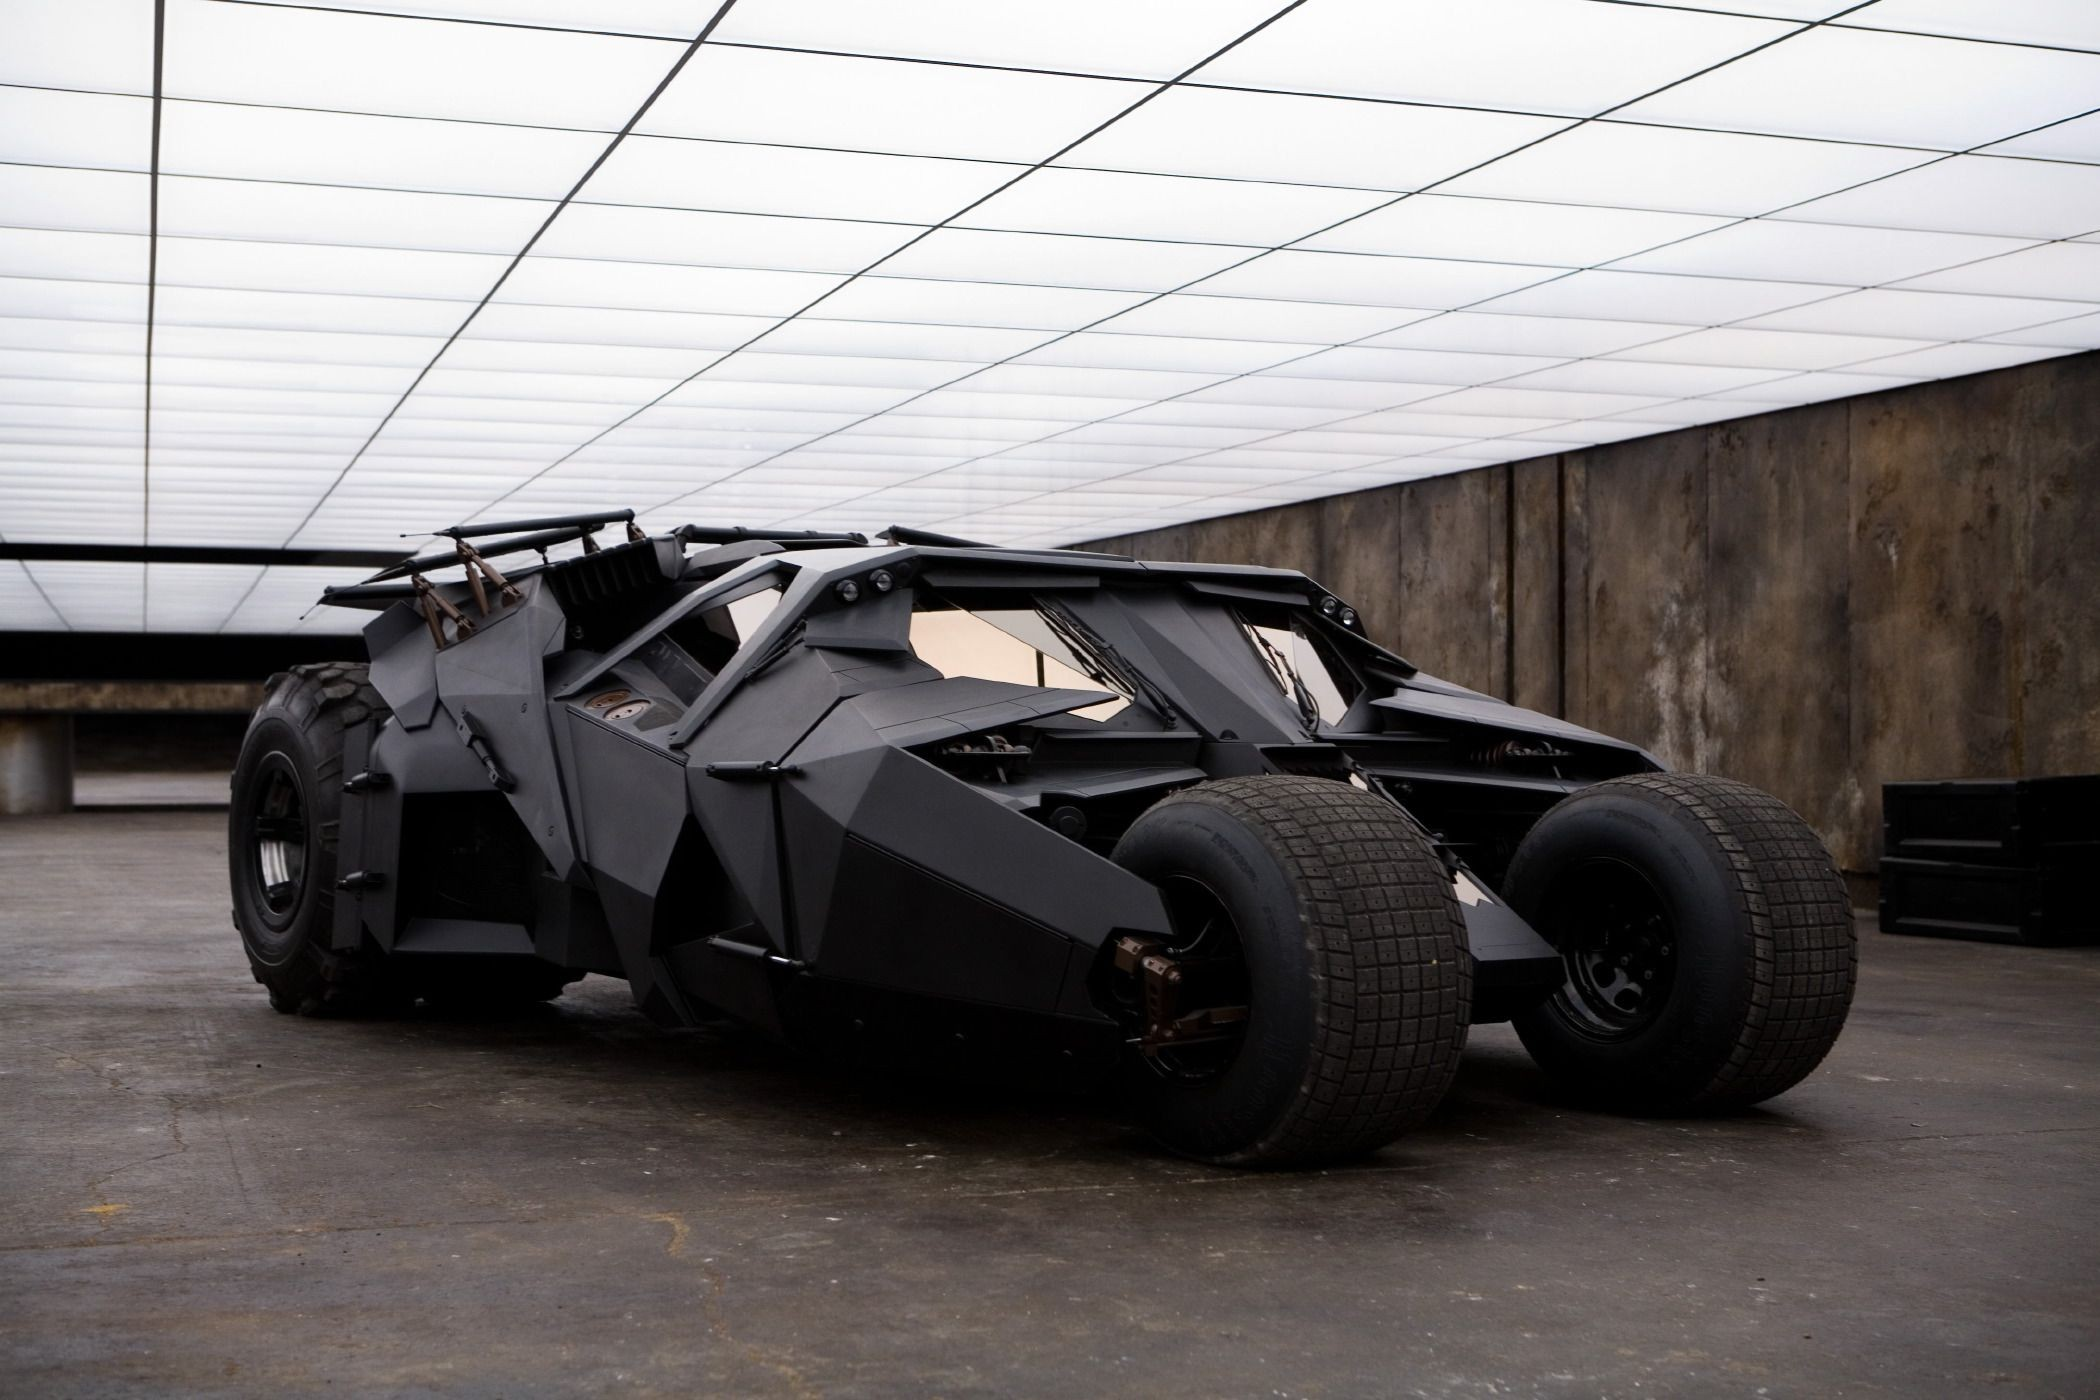 batman-cars_00269861